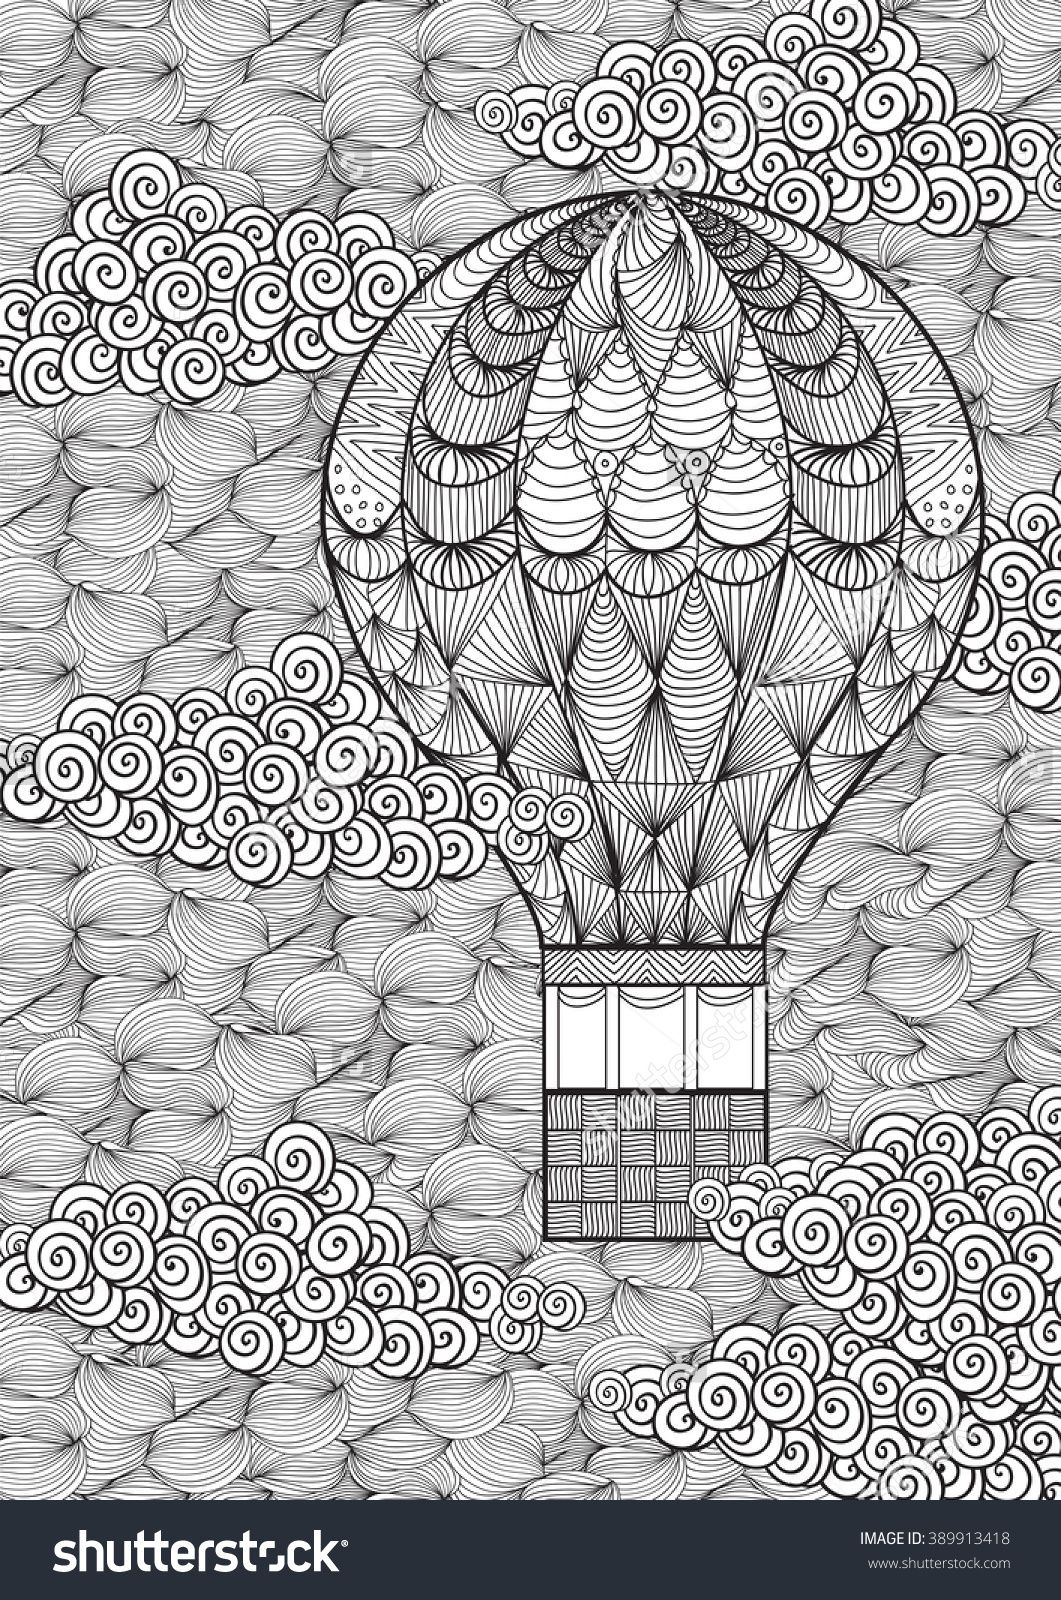 Hot Air Balloon In Clouds Doodle Zentangle Adult Coloring Shutterstock 389913418